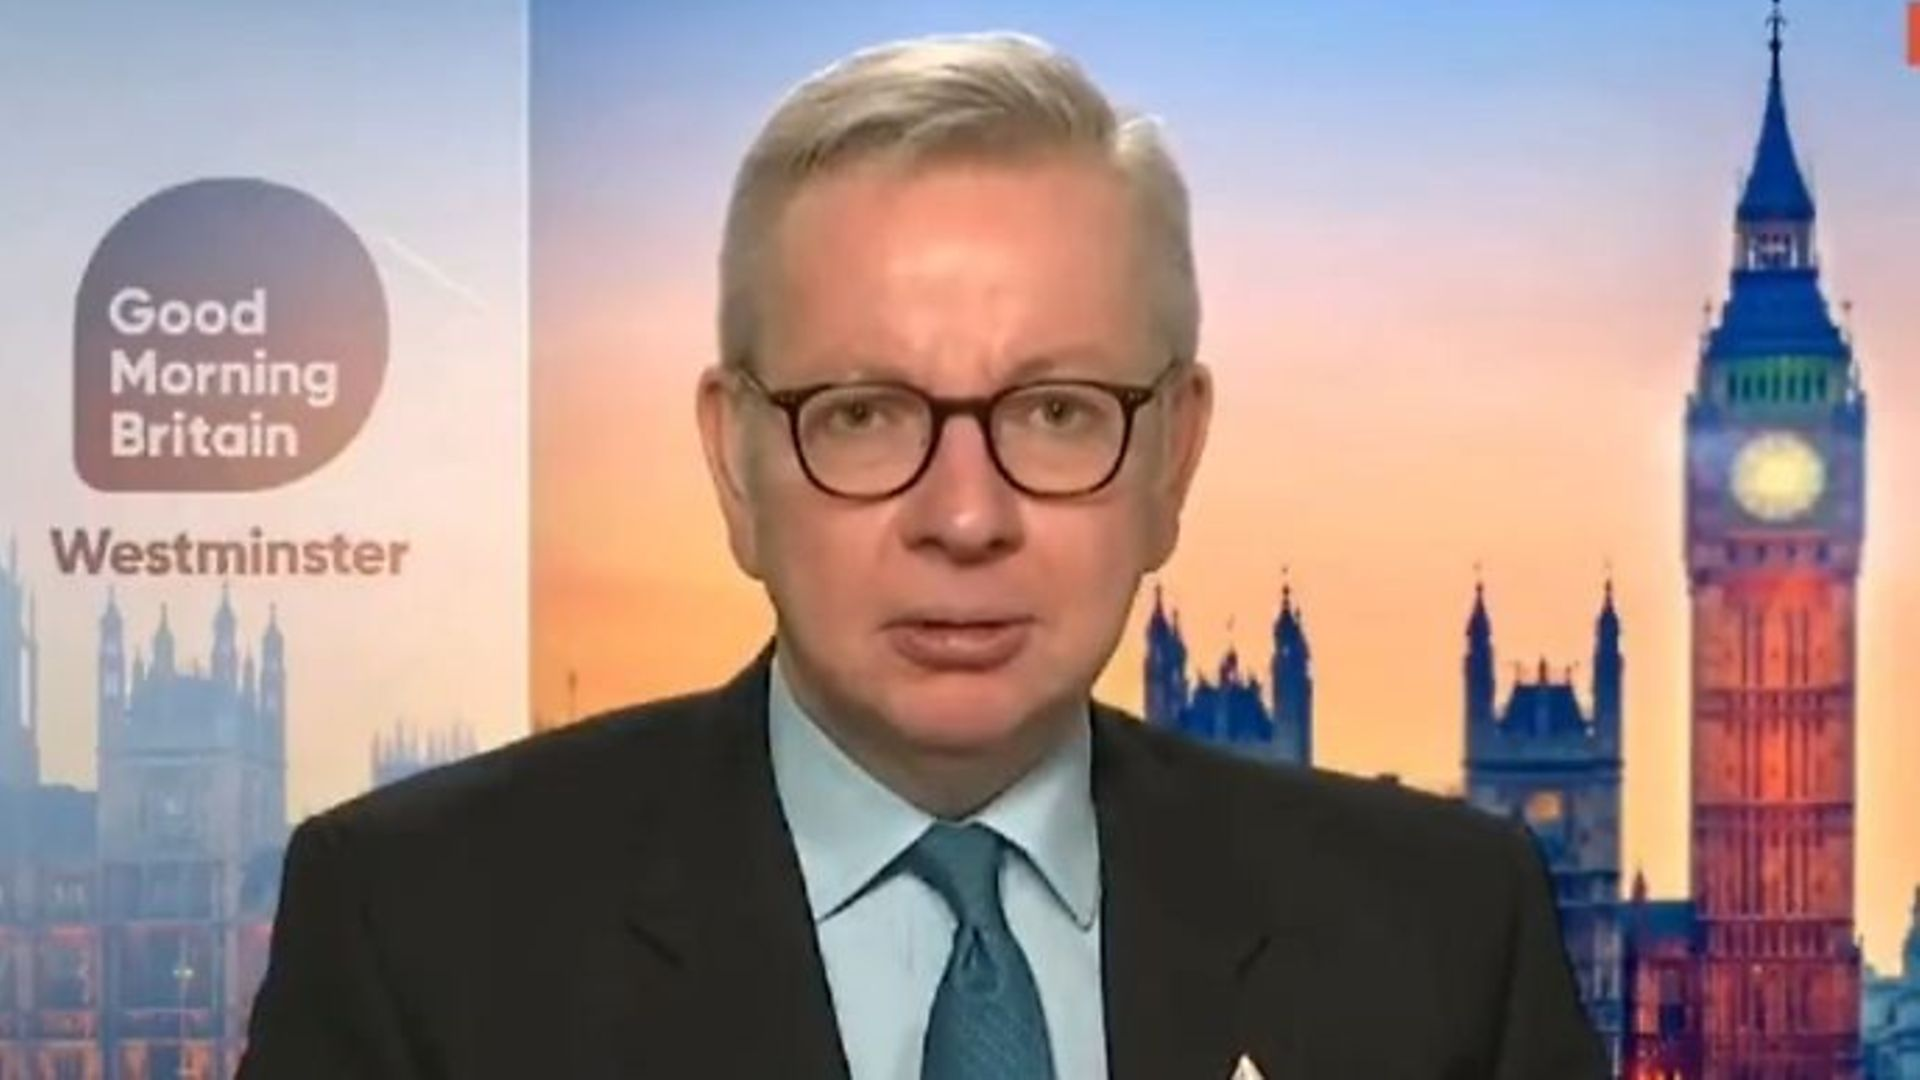 Michael Gove on Good Morning Britain - Credit: Twitter